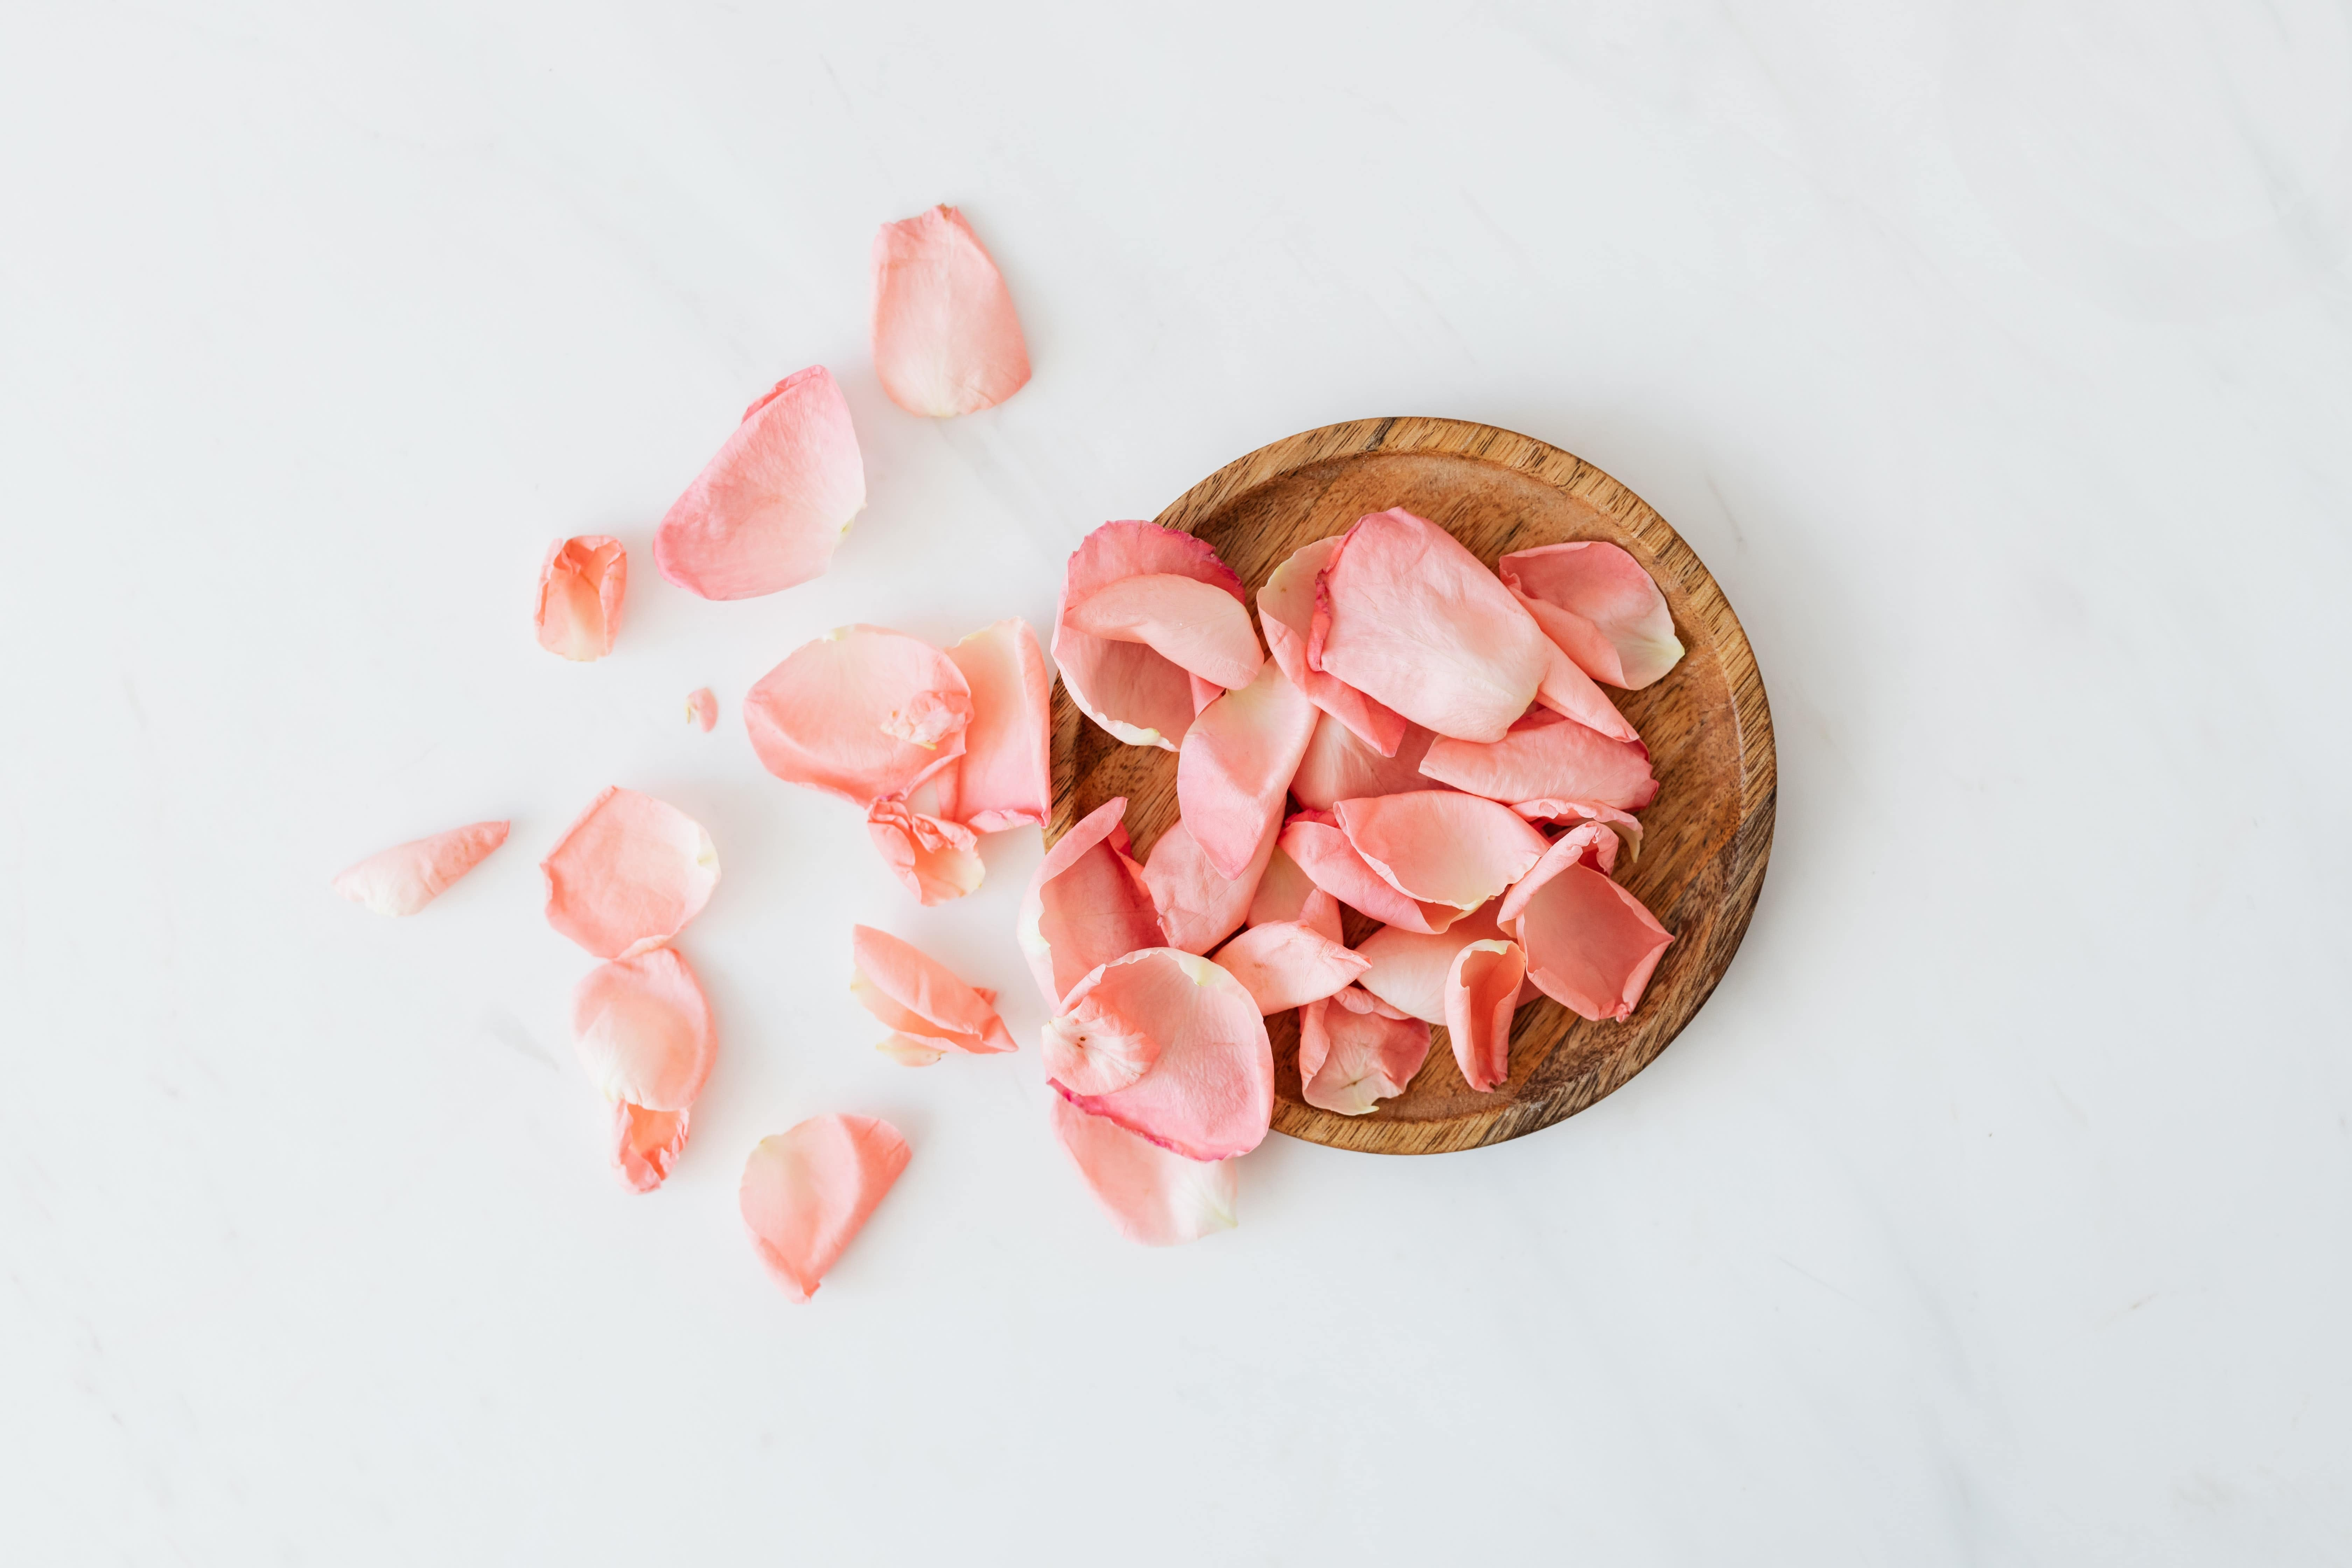 Rose petals falling from a basket against a white background